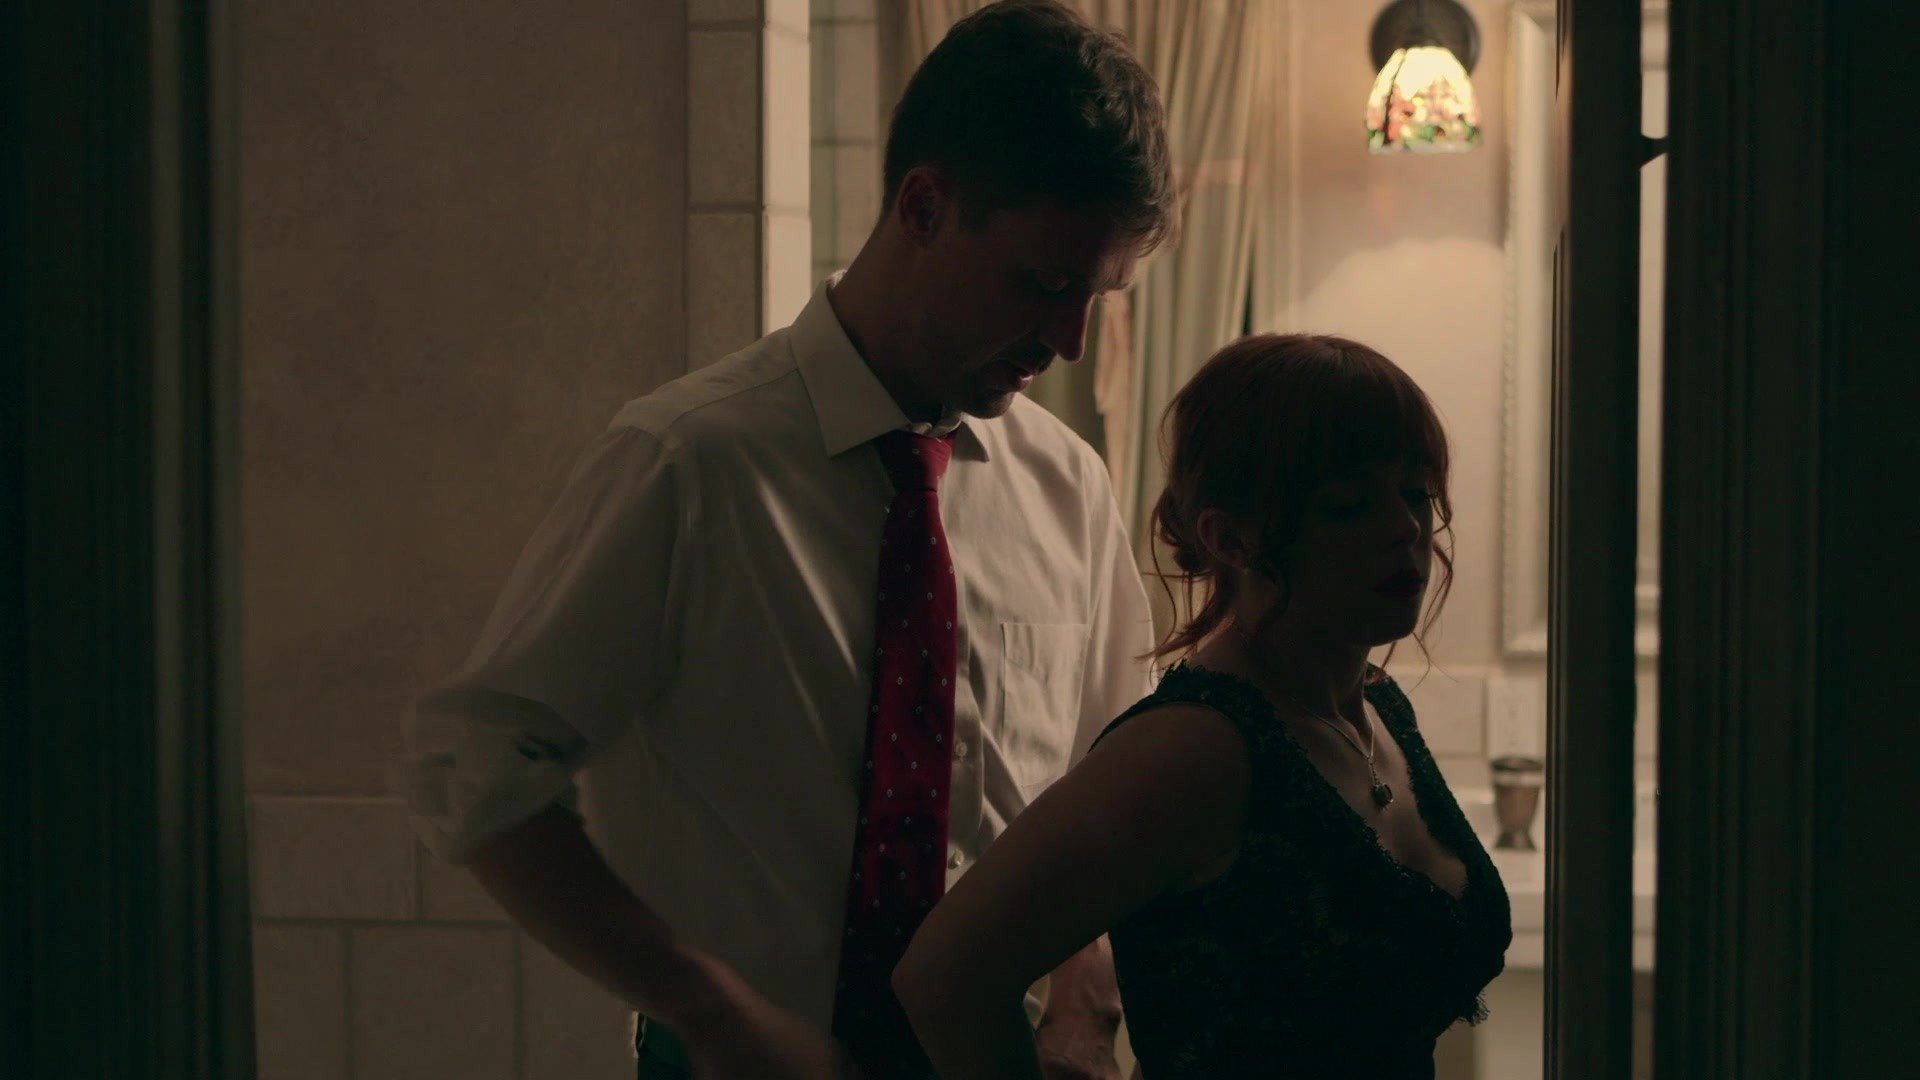 Scene with Richie Calhoun and Samantha Hayes - image 4 out of 20